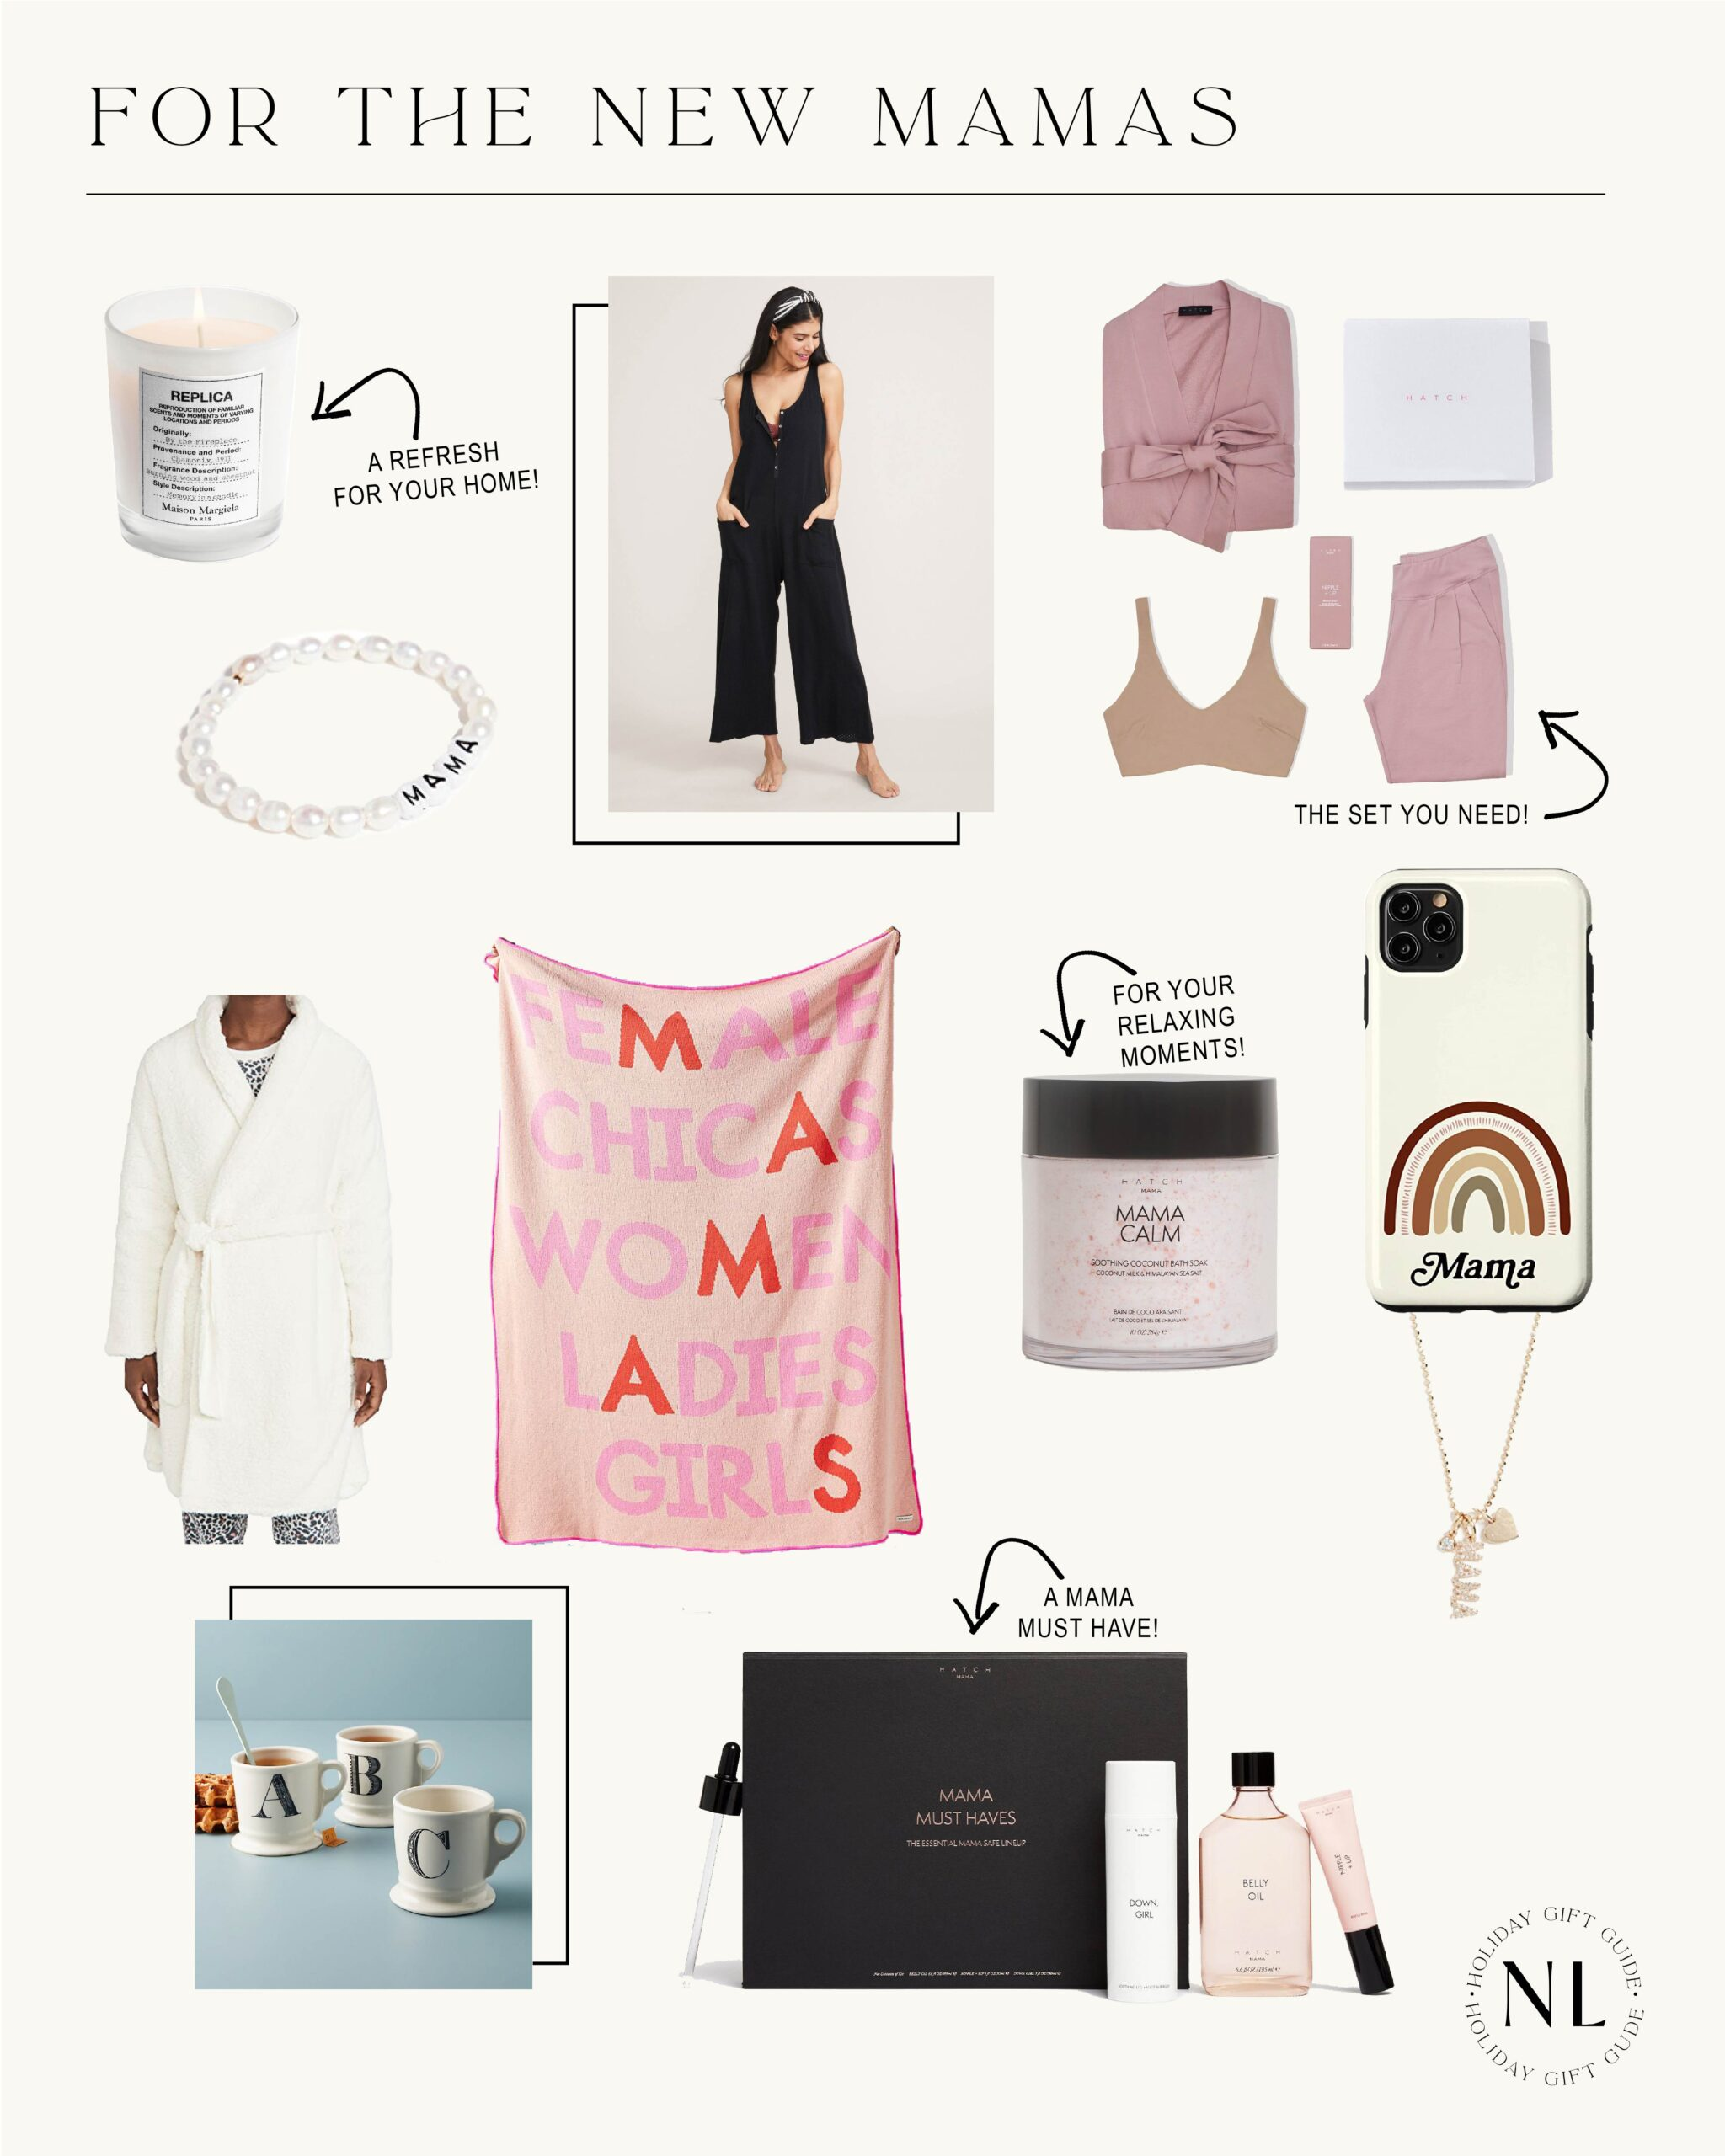 GIFT GUIDE: For The New Mama